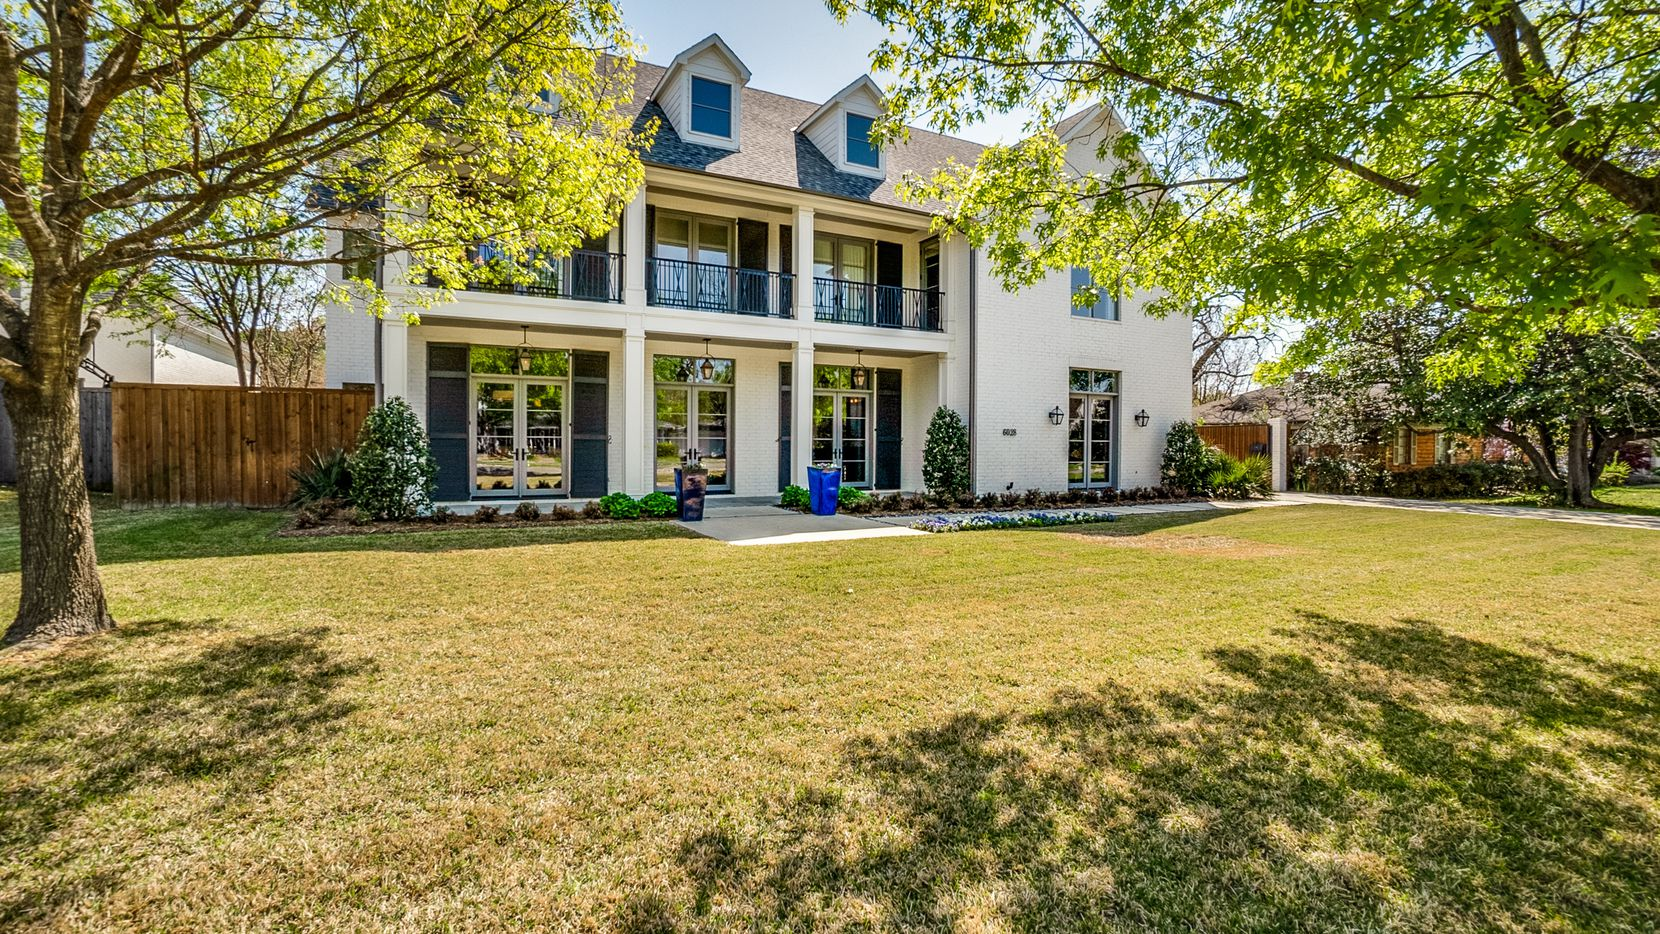 Take a look inside 6028 Northwood Road in Dallas.